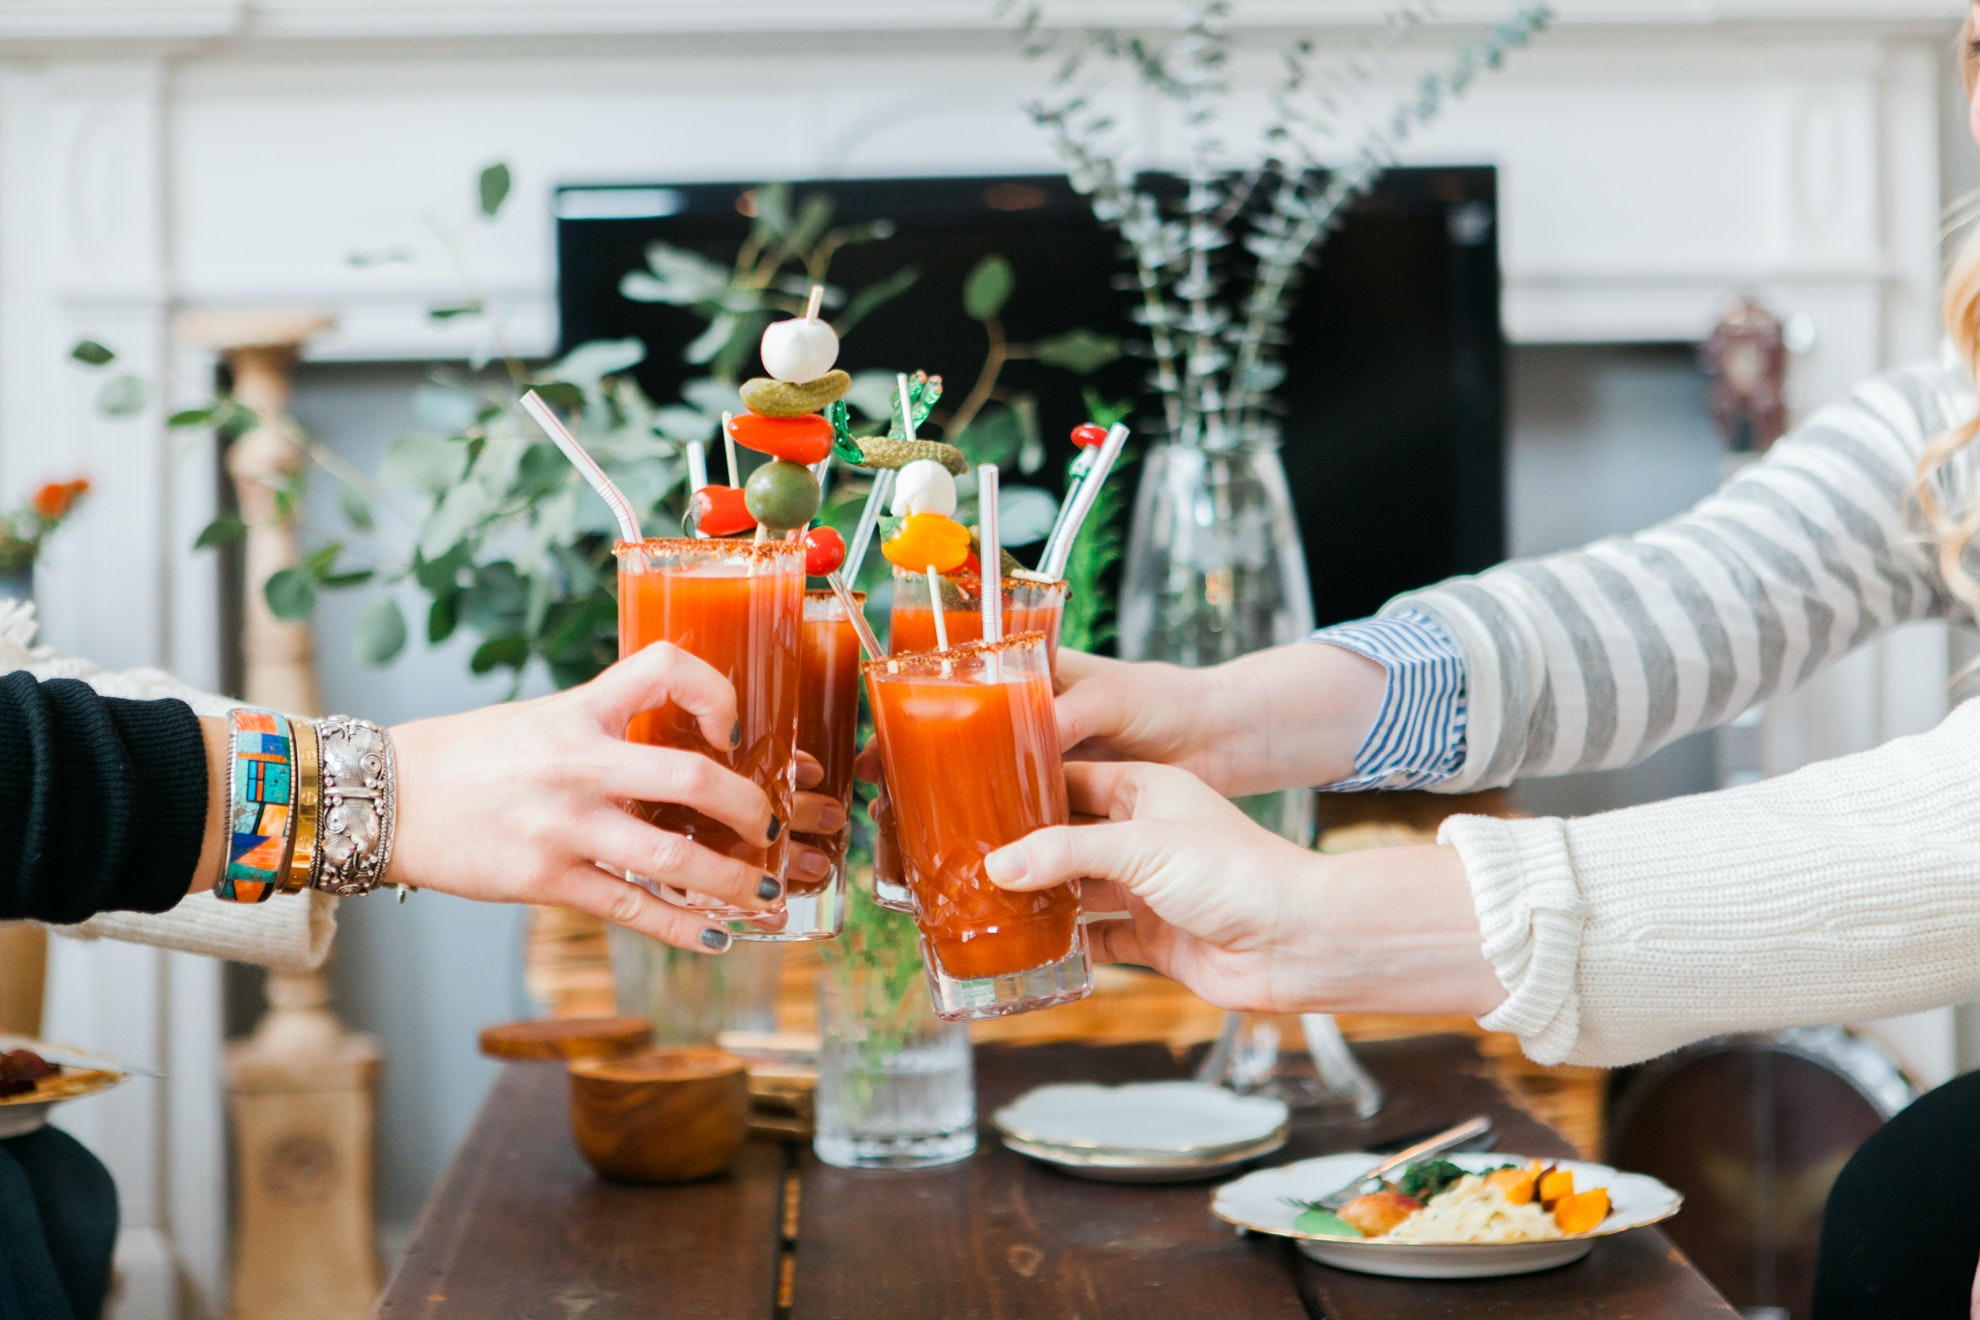 DIY a Bloody Mary Bar This Weekend